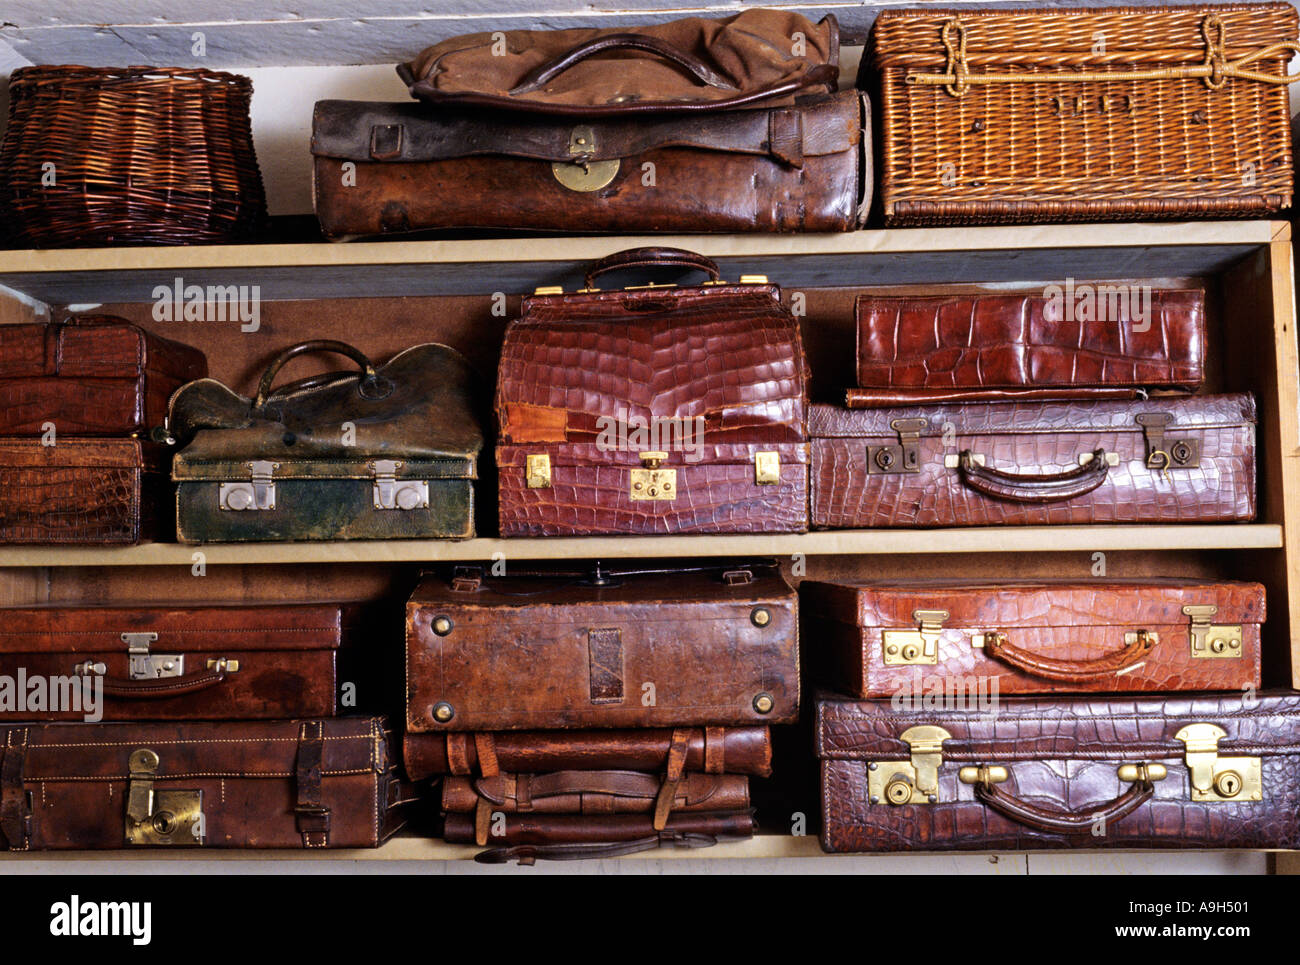 Shelves Of Battered Old Leather Suitcases Stock Photo